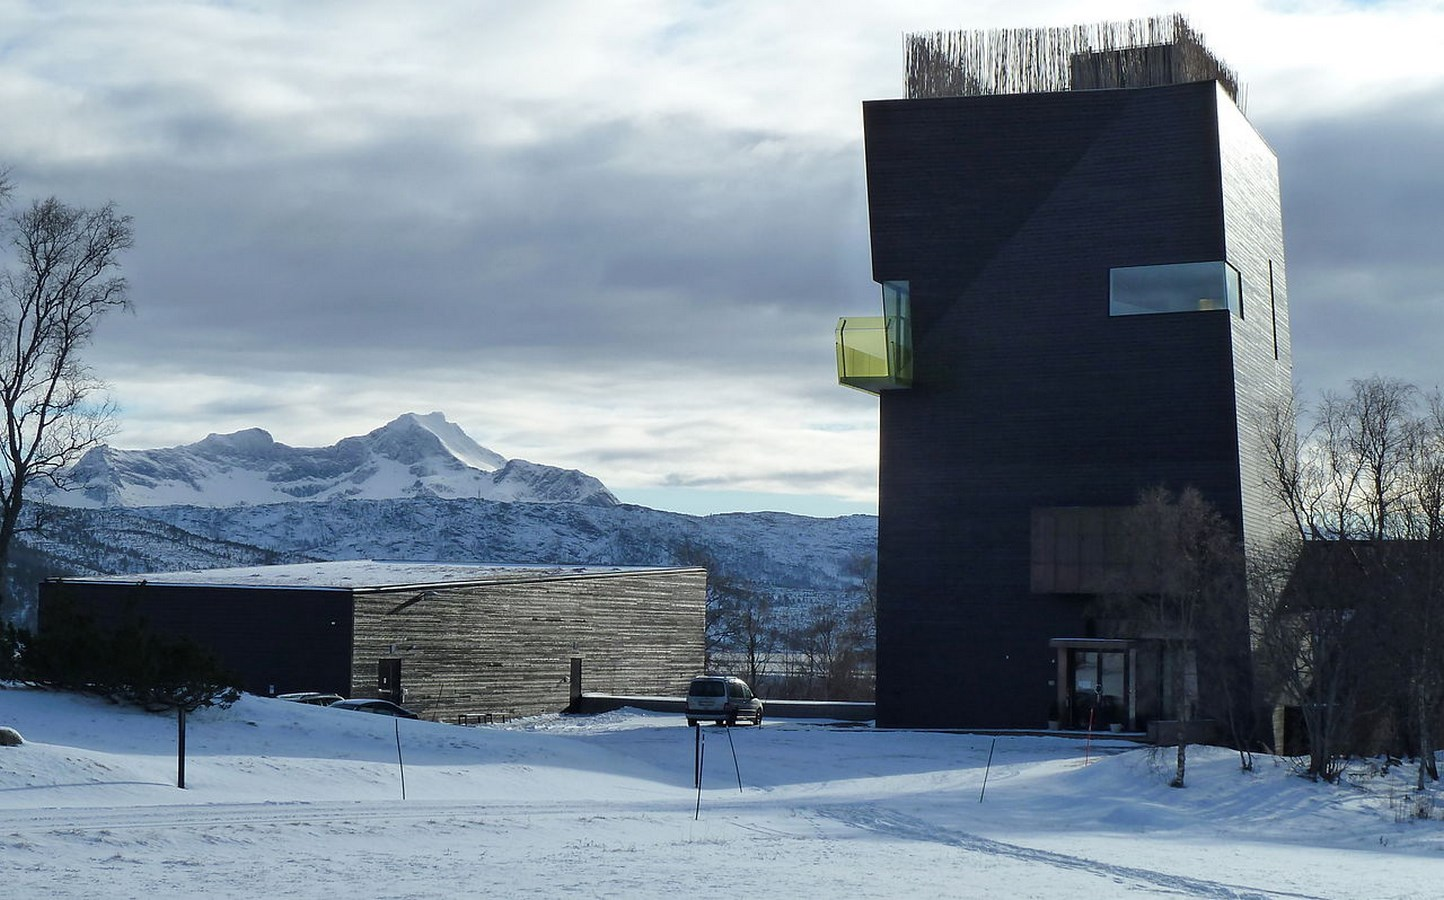 25 Projects by Steven Holl that mark his shift from Typology to Phenomenology - Knut Hamsun Centre, Norway